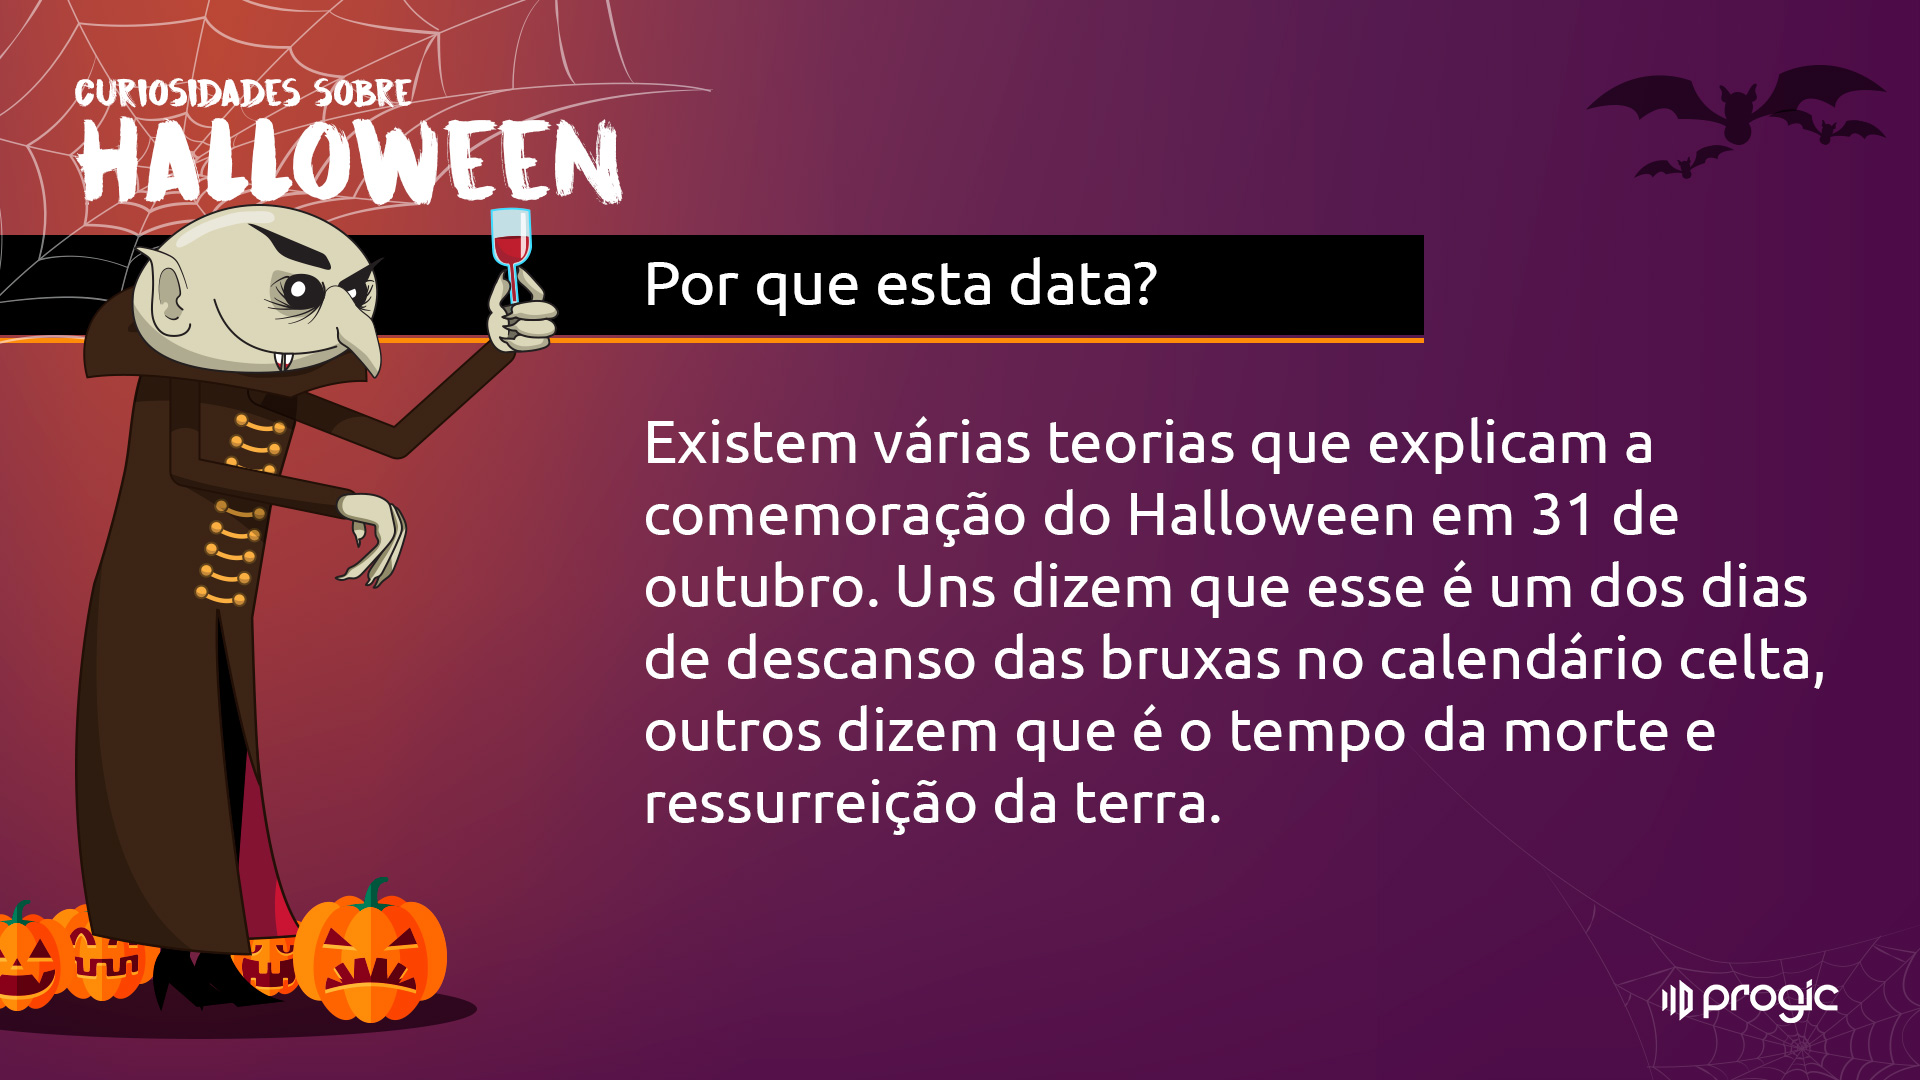 progic-encomarketing-curiosidades-sobre-o-halloween